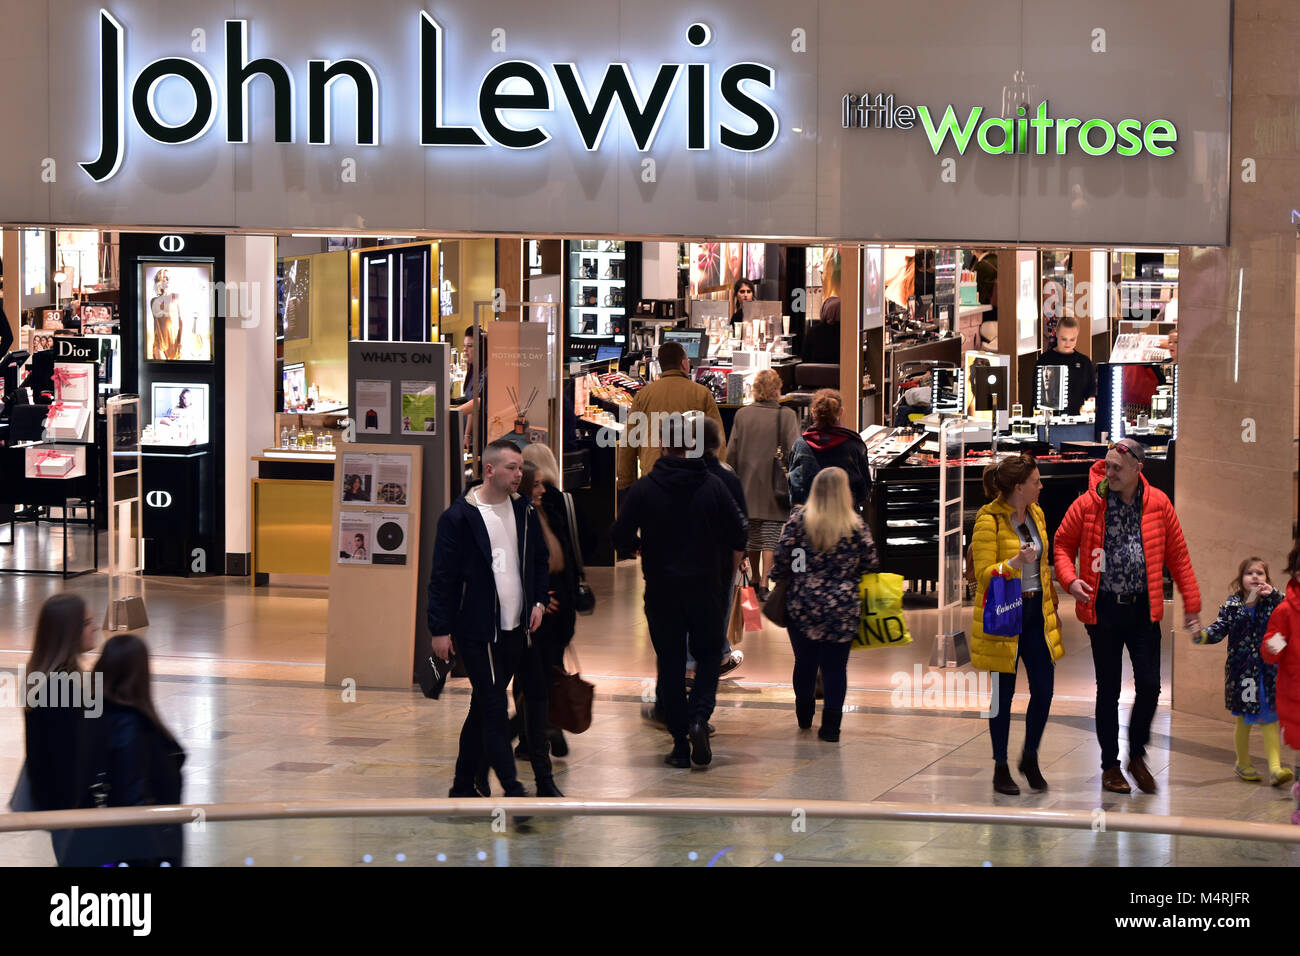 the front of a large john lewis and waitrose store or shop in west quay shopping centre in the centre of the southampton. - Stock Image